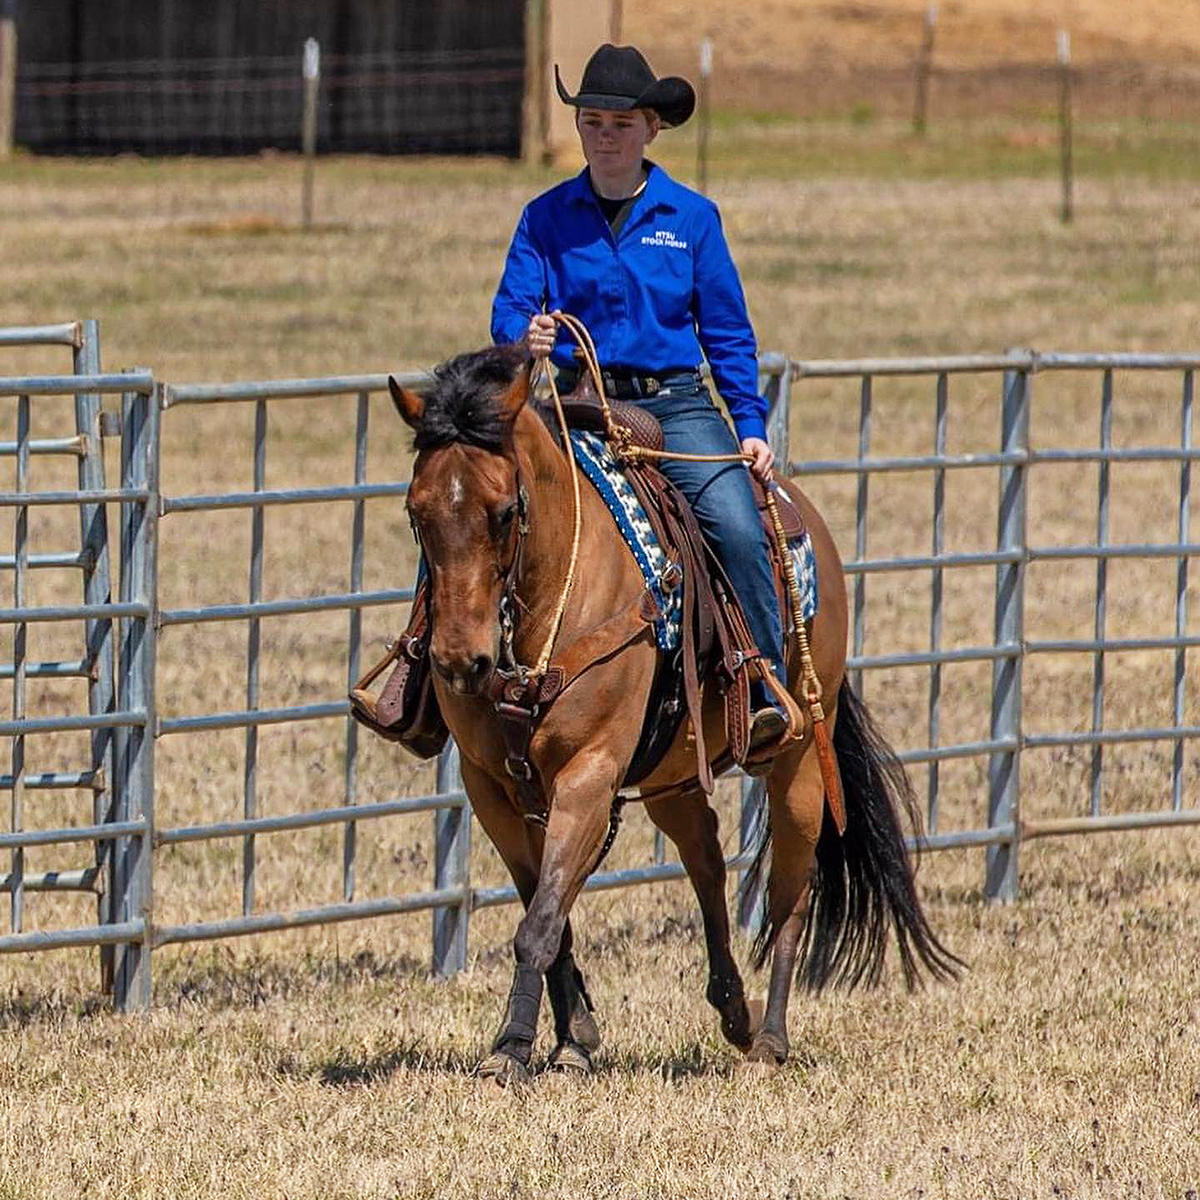 Louann Braunwalder, a freshman fermentation science major from Lascassas, Tenn., rode Twentyeventwister to the ASHA National Youth Pleasure & Reining Championship in the National Champion, Youth 14-18 division April 16-17 in the Nolan County Coliseum in Sweetwater, Texas. (Submitted photo by Gary Cox)